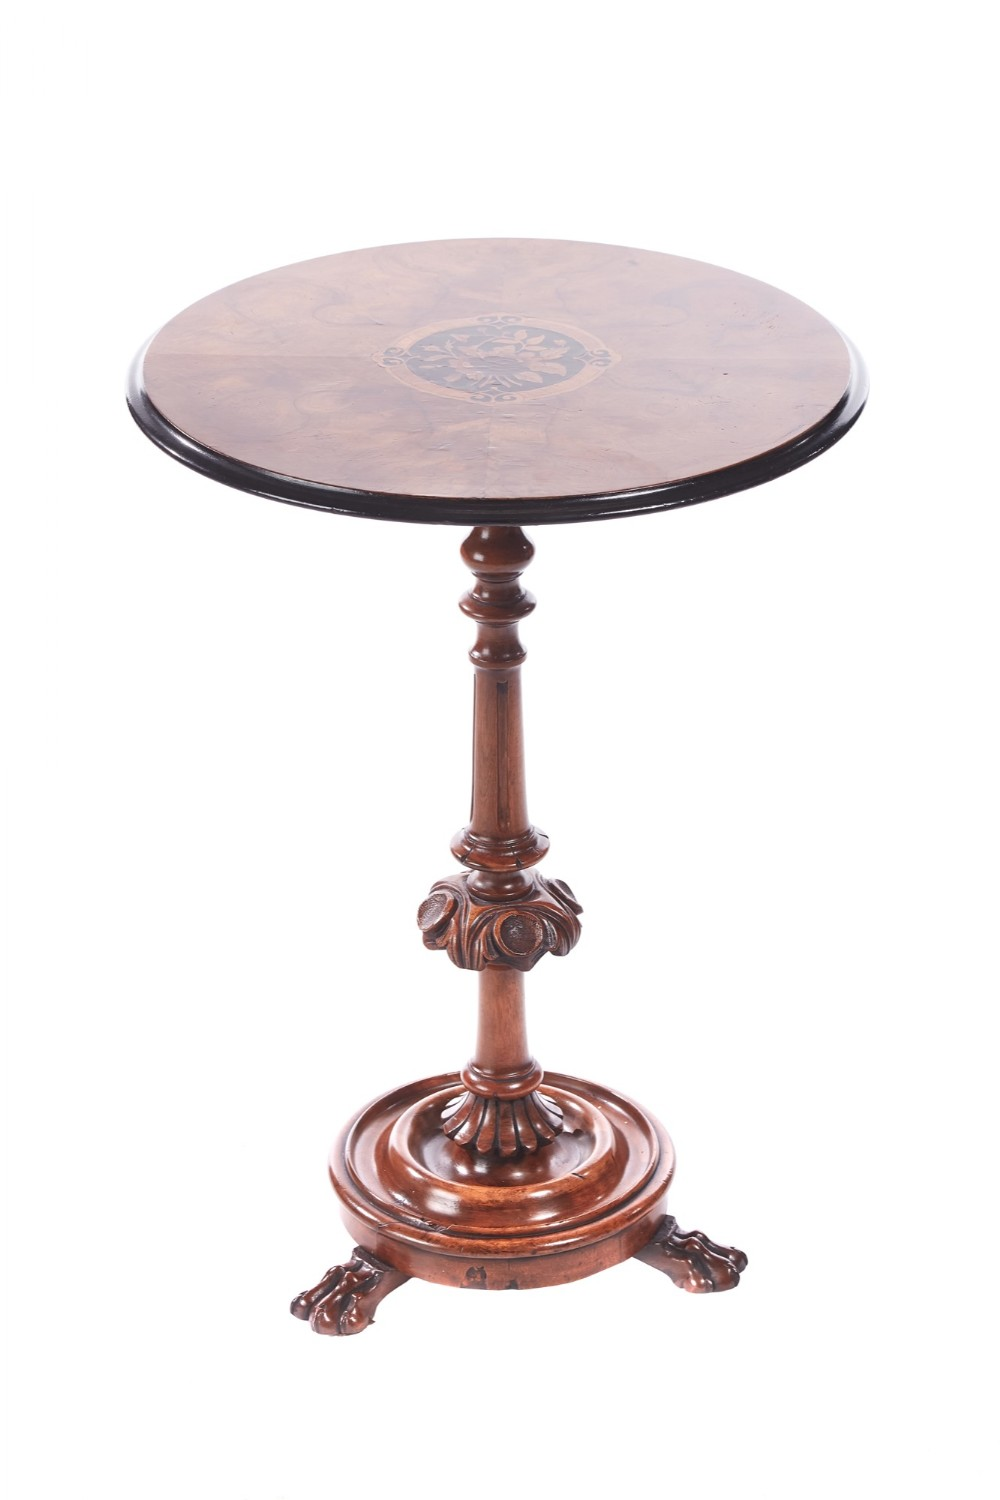 victorian walnut carved inlaid circular lamp table